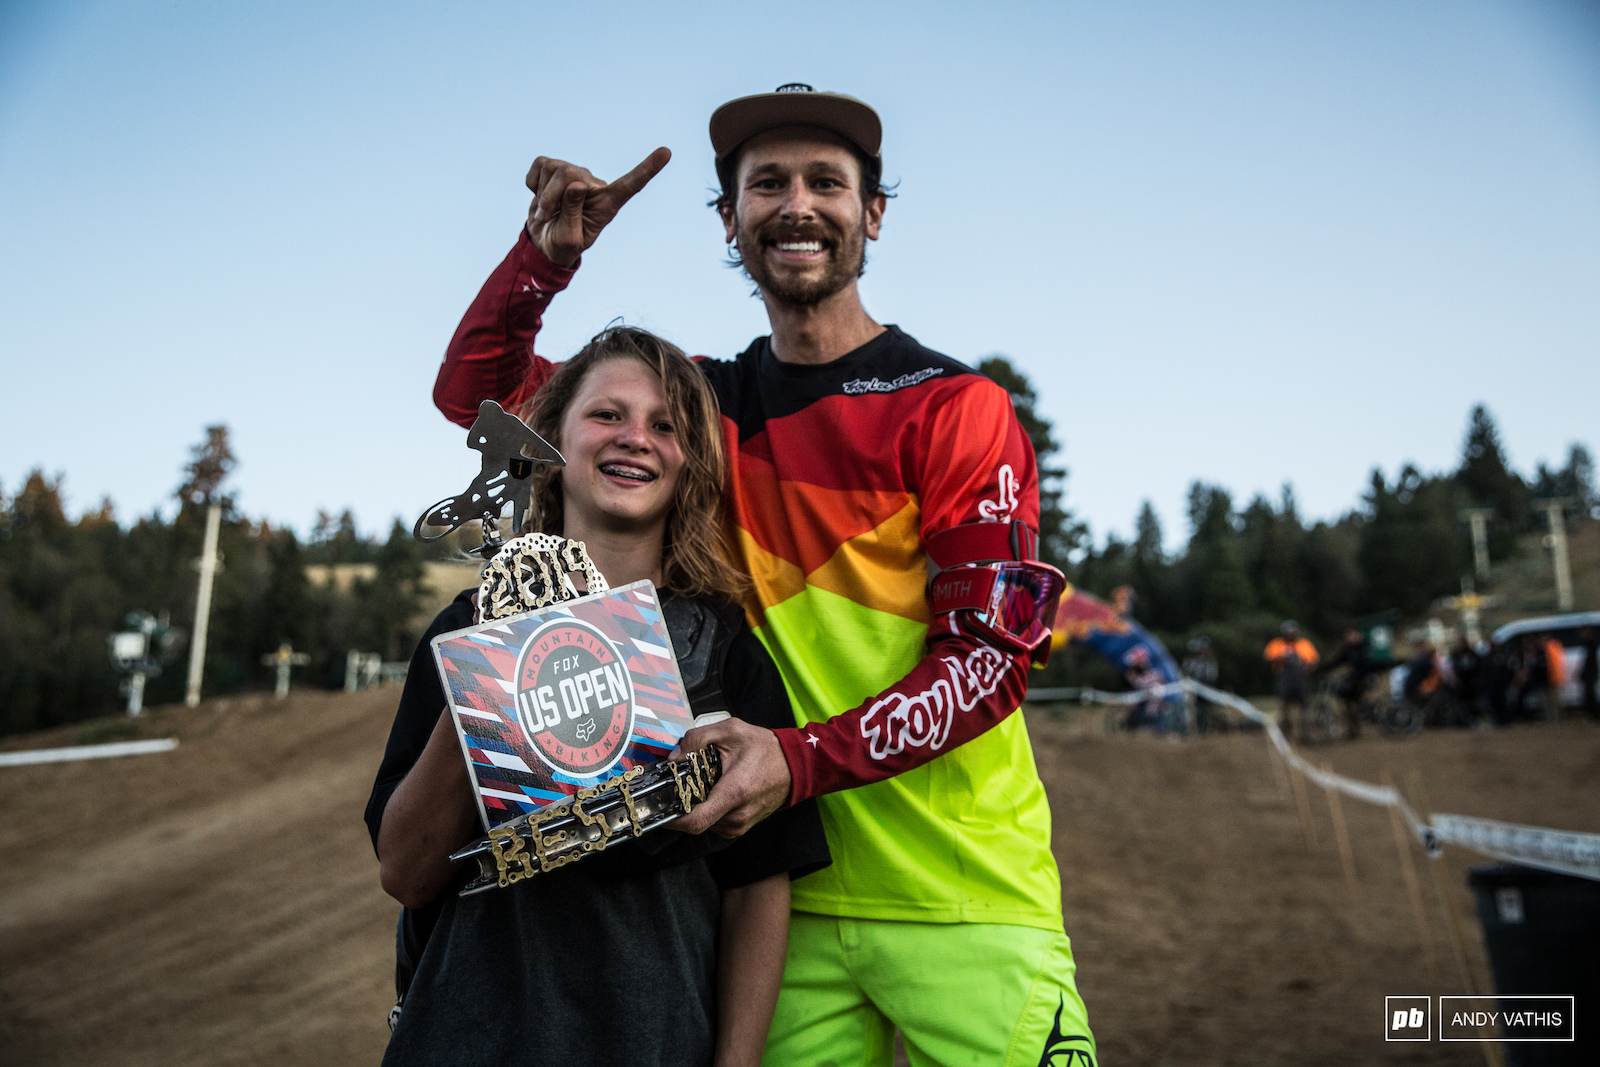 Allan Cooke passing his prize and torch to Ryan Pinkerton king of the Groms after showing everyone how it s done.